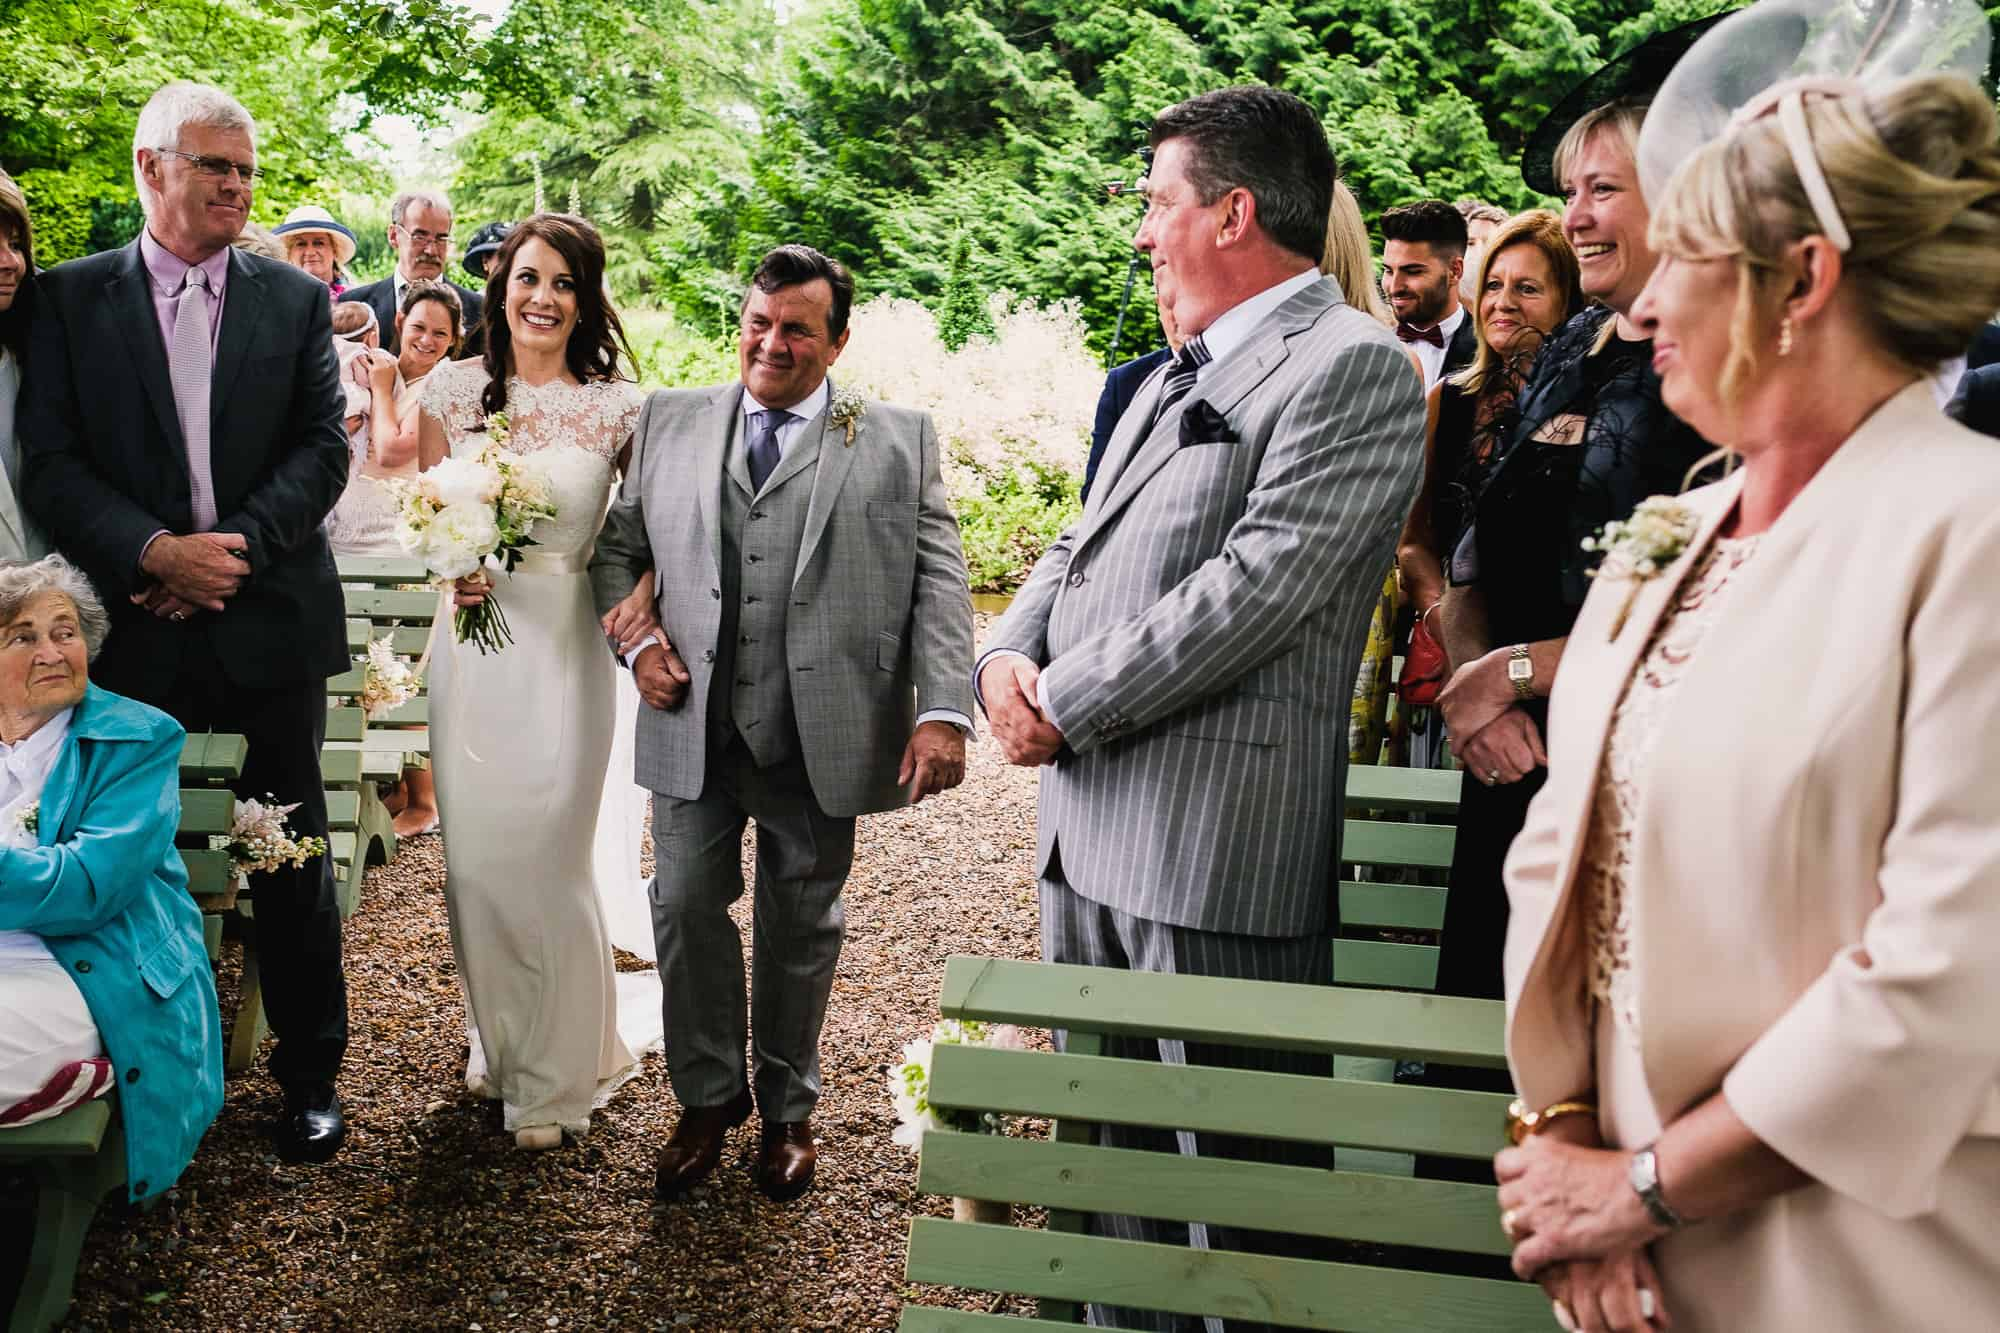 huntsham-court-wedding-photography-matt-tyler-0023